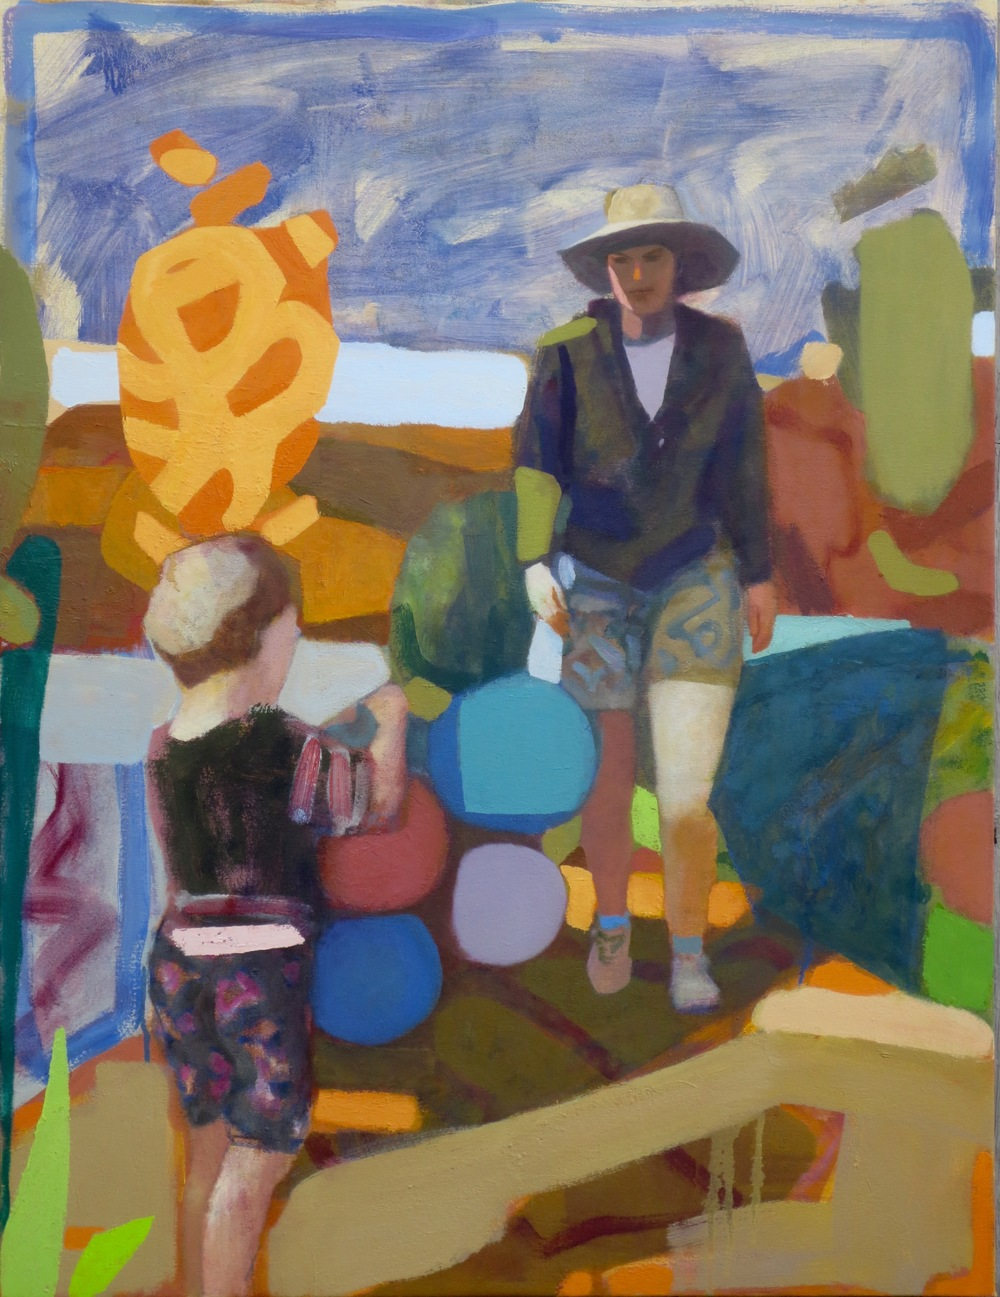 Boy with Balloons, 2015